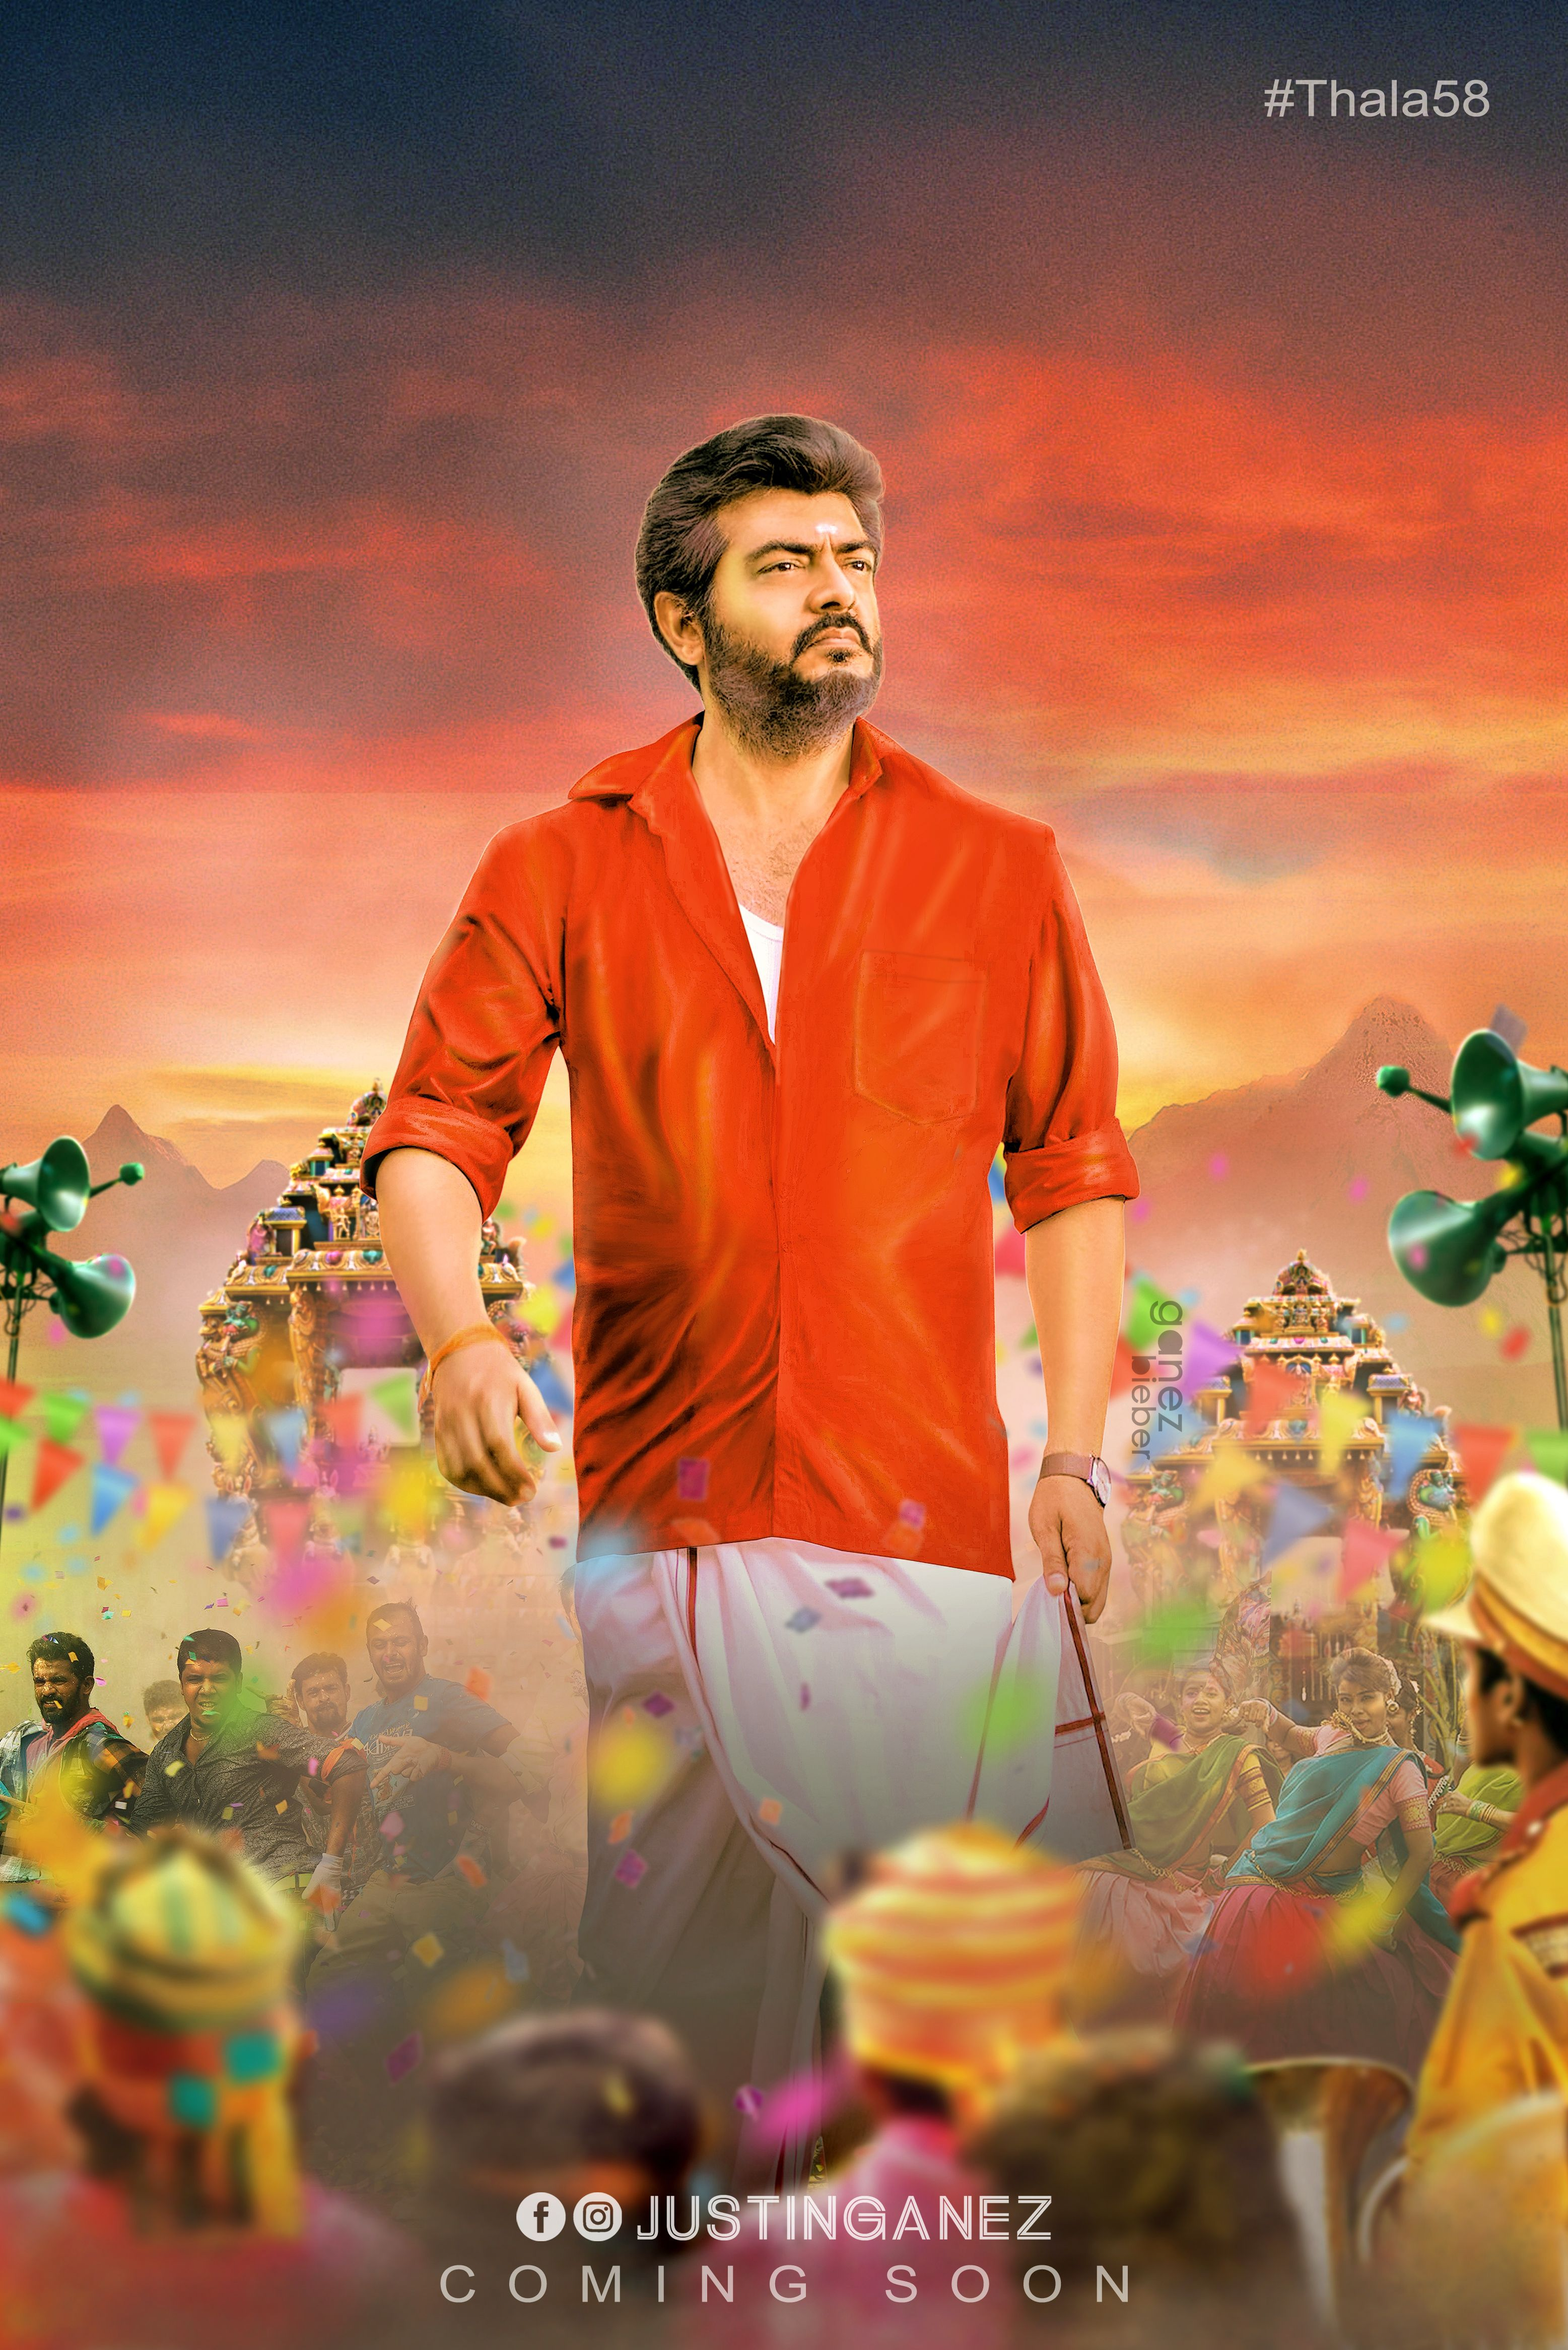 Tamil Movie Poster Background Hd